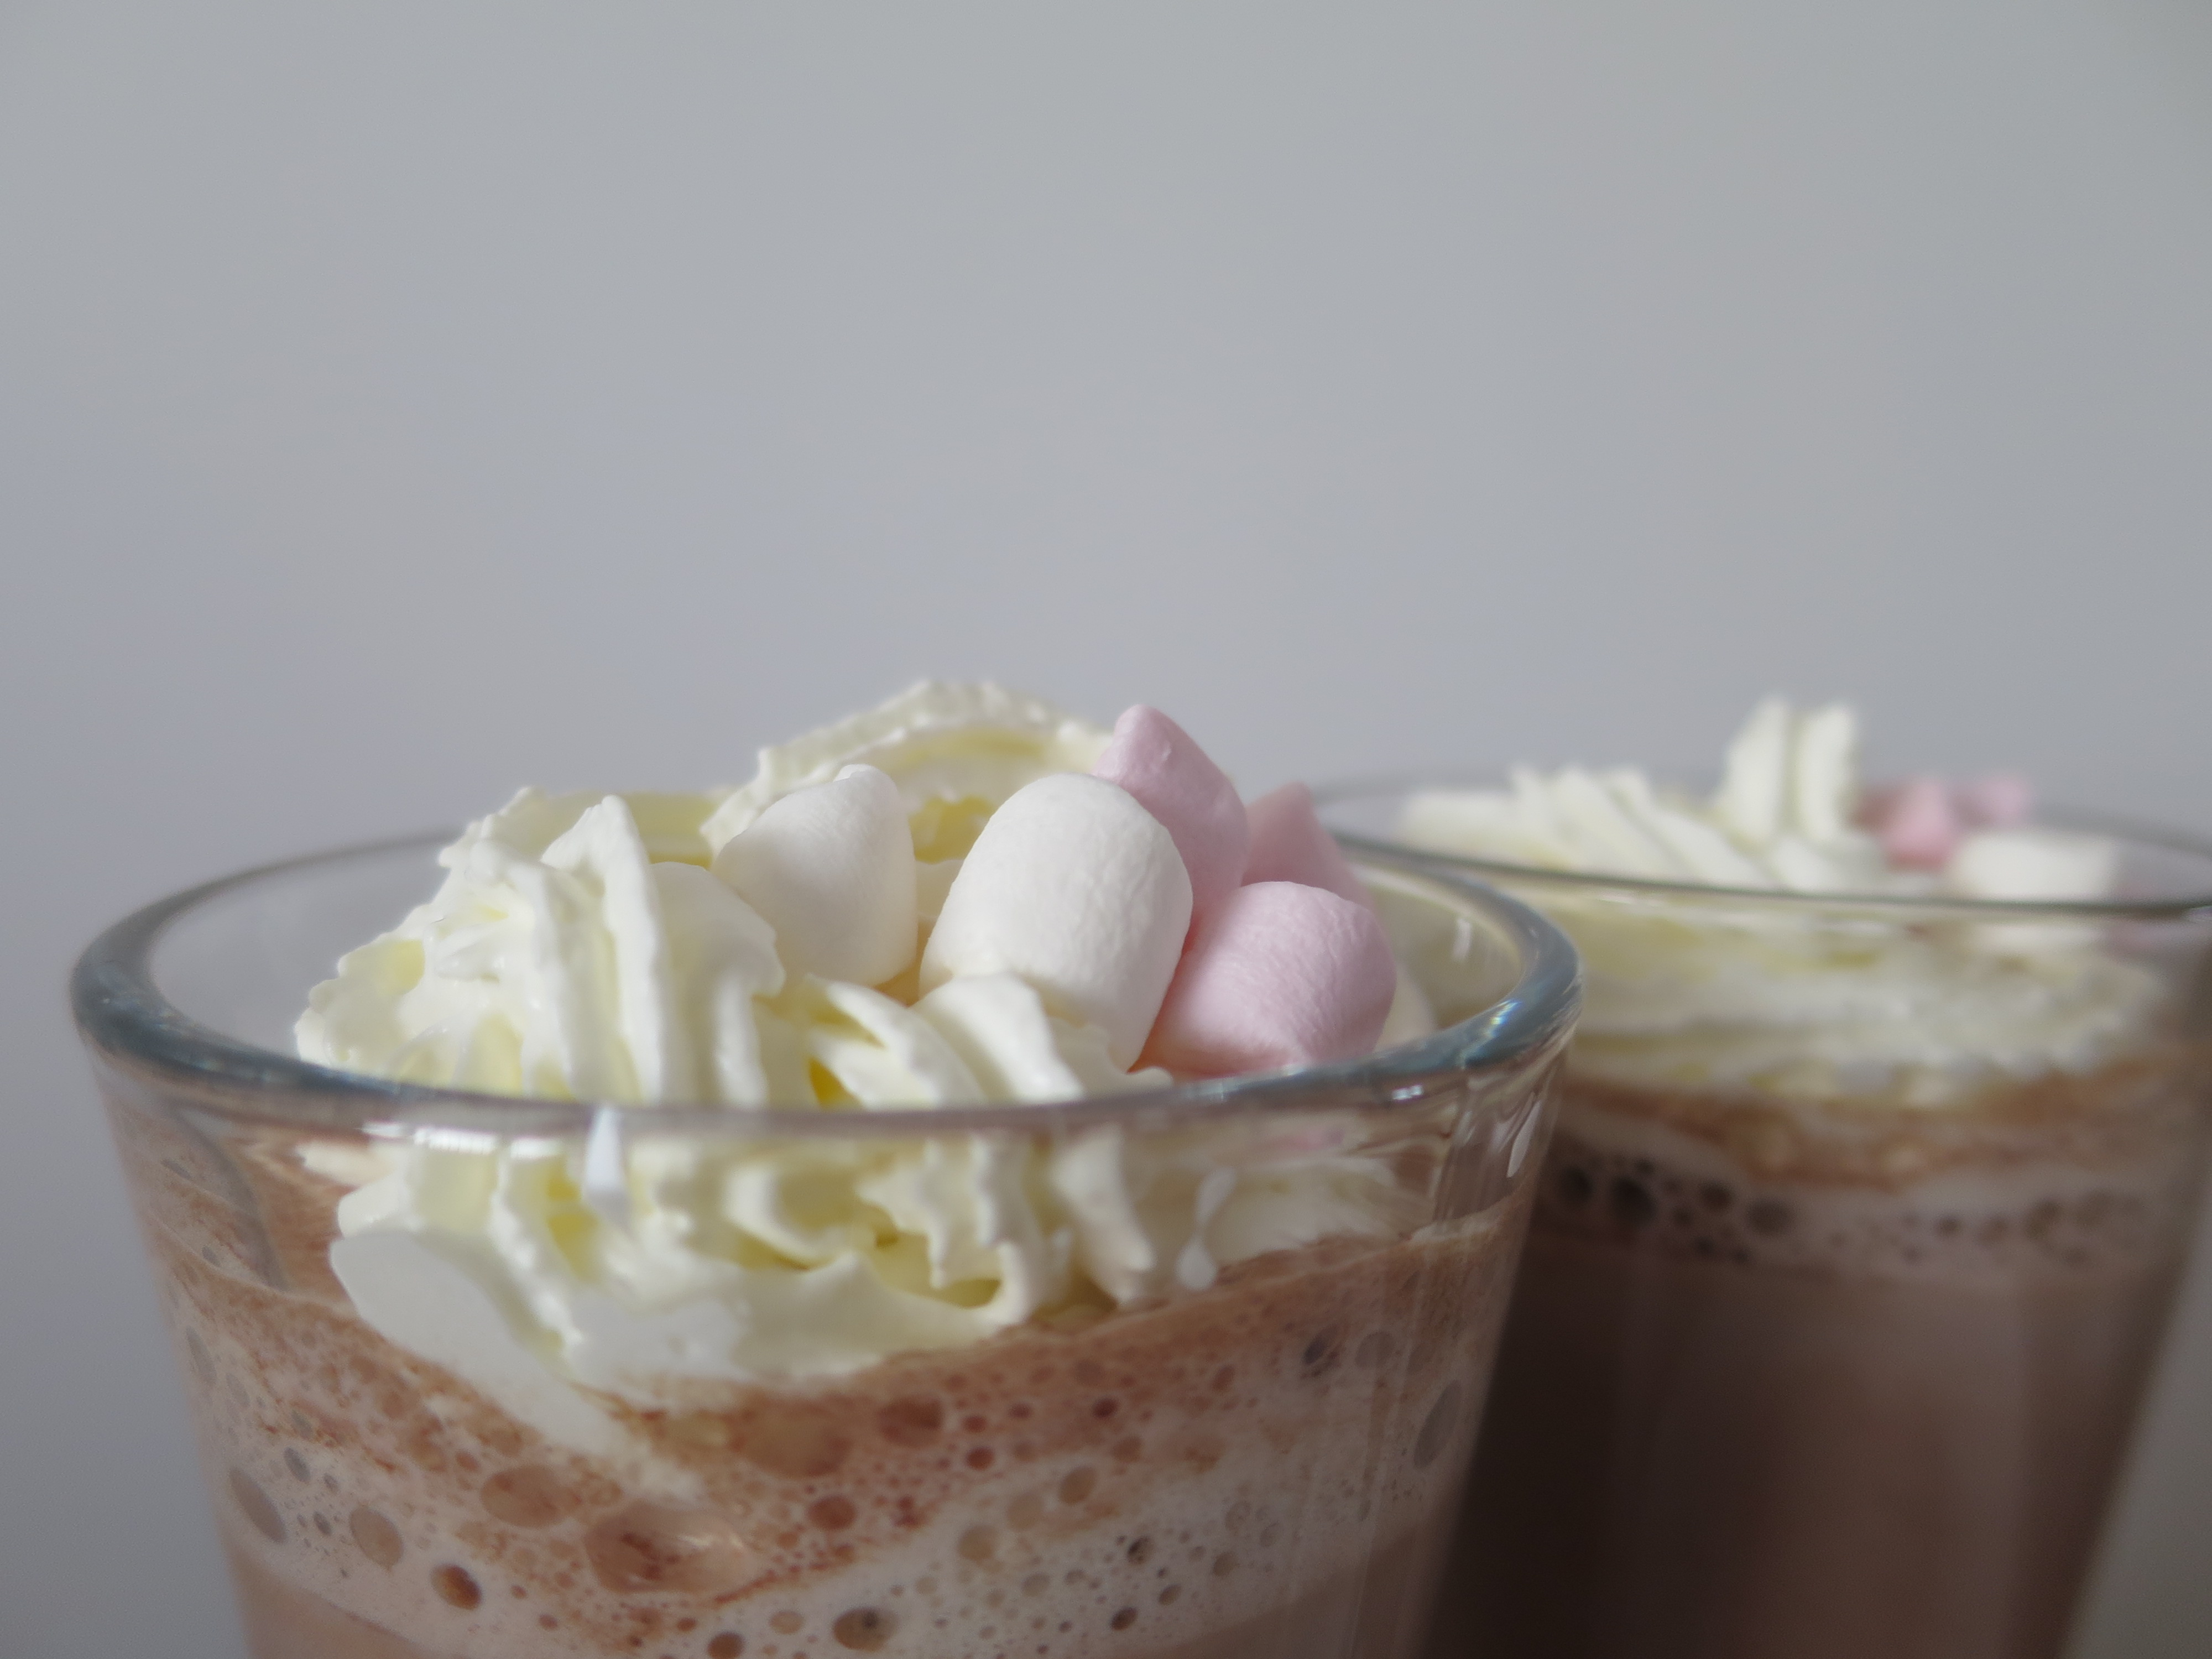 Peanut butter hot chocolate cream and marshmallows